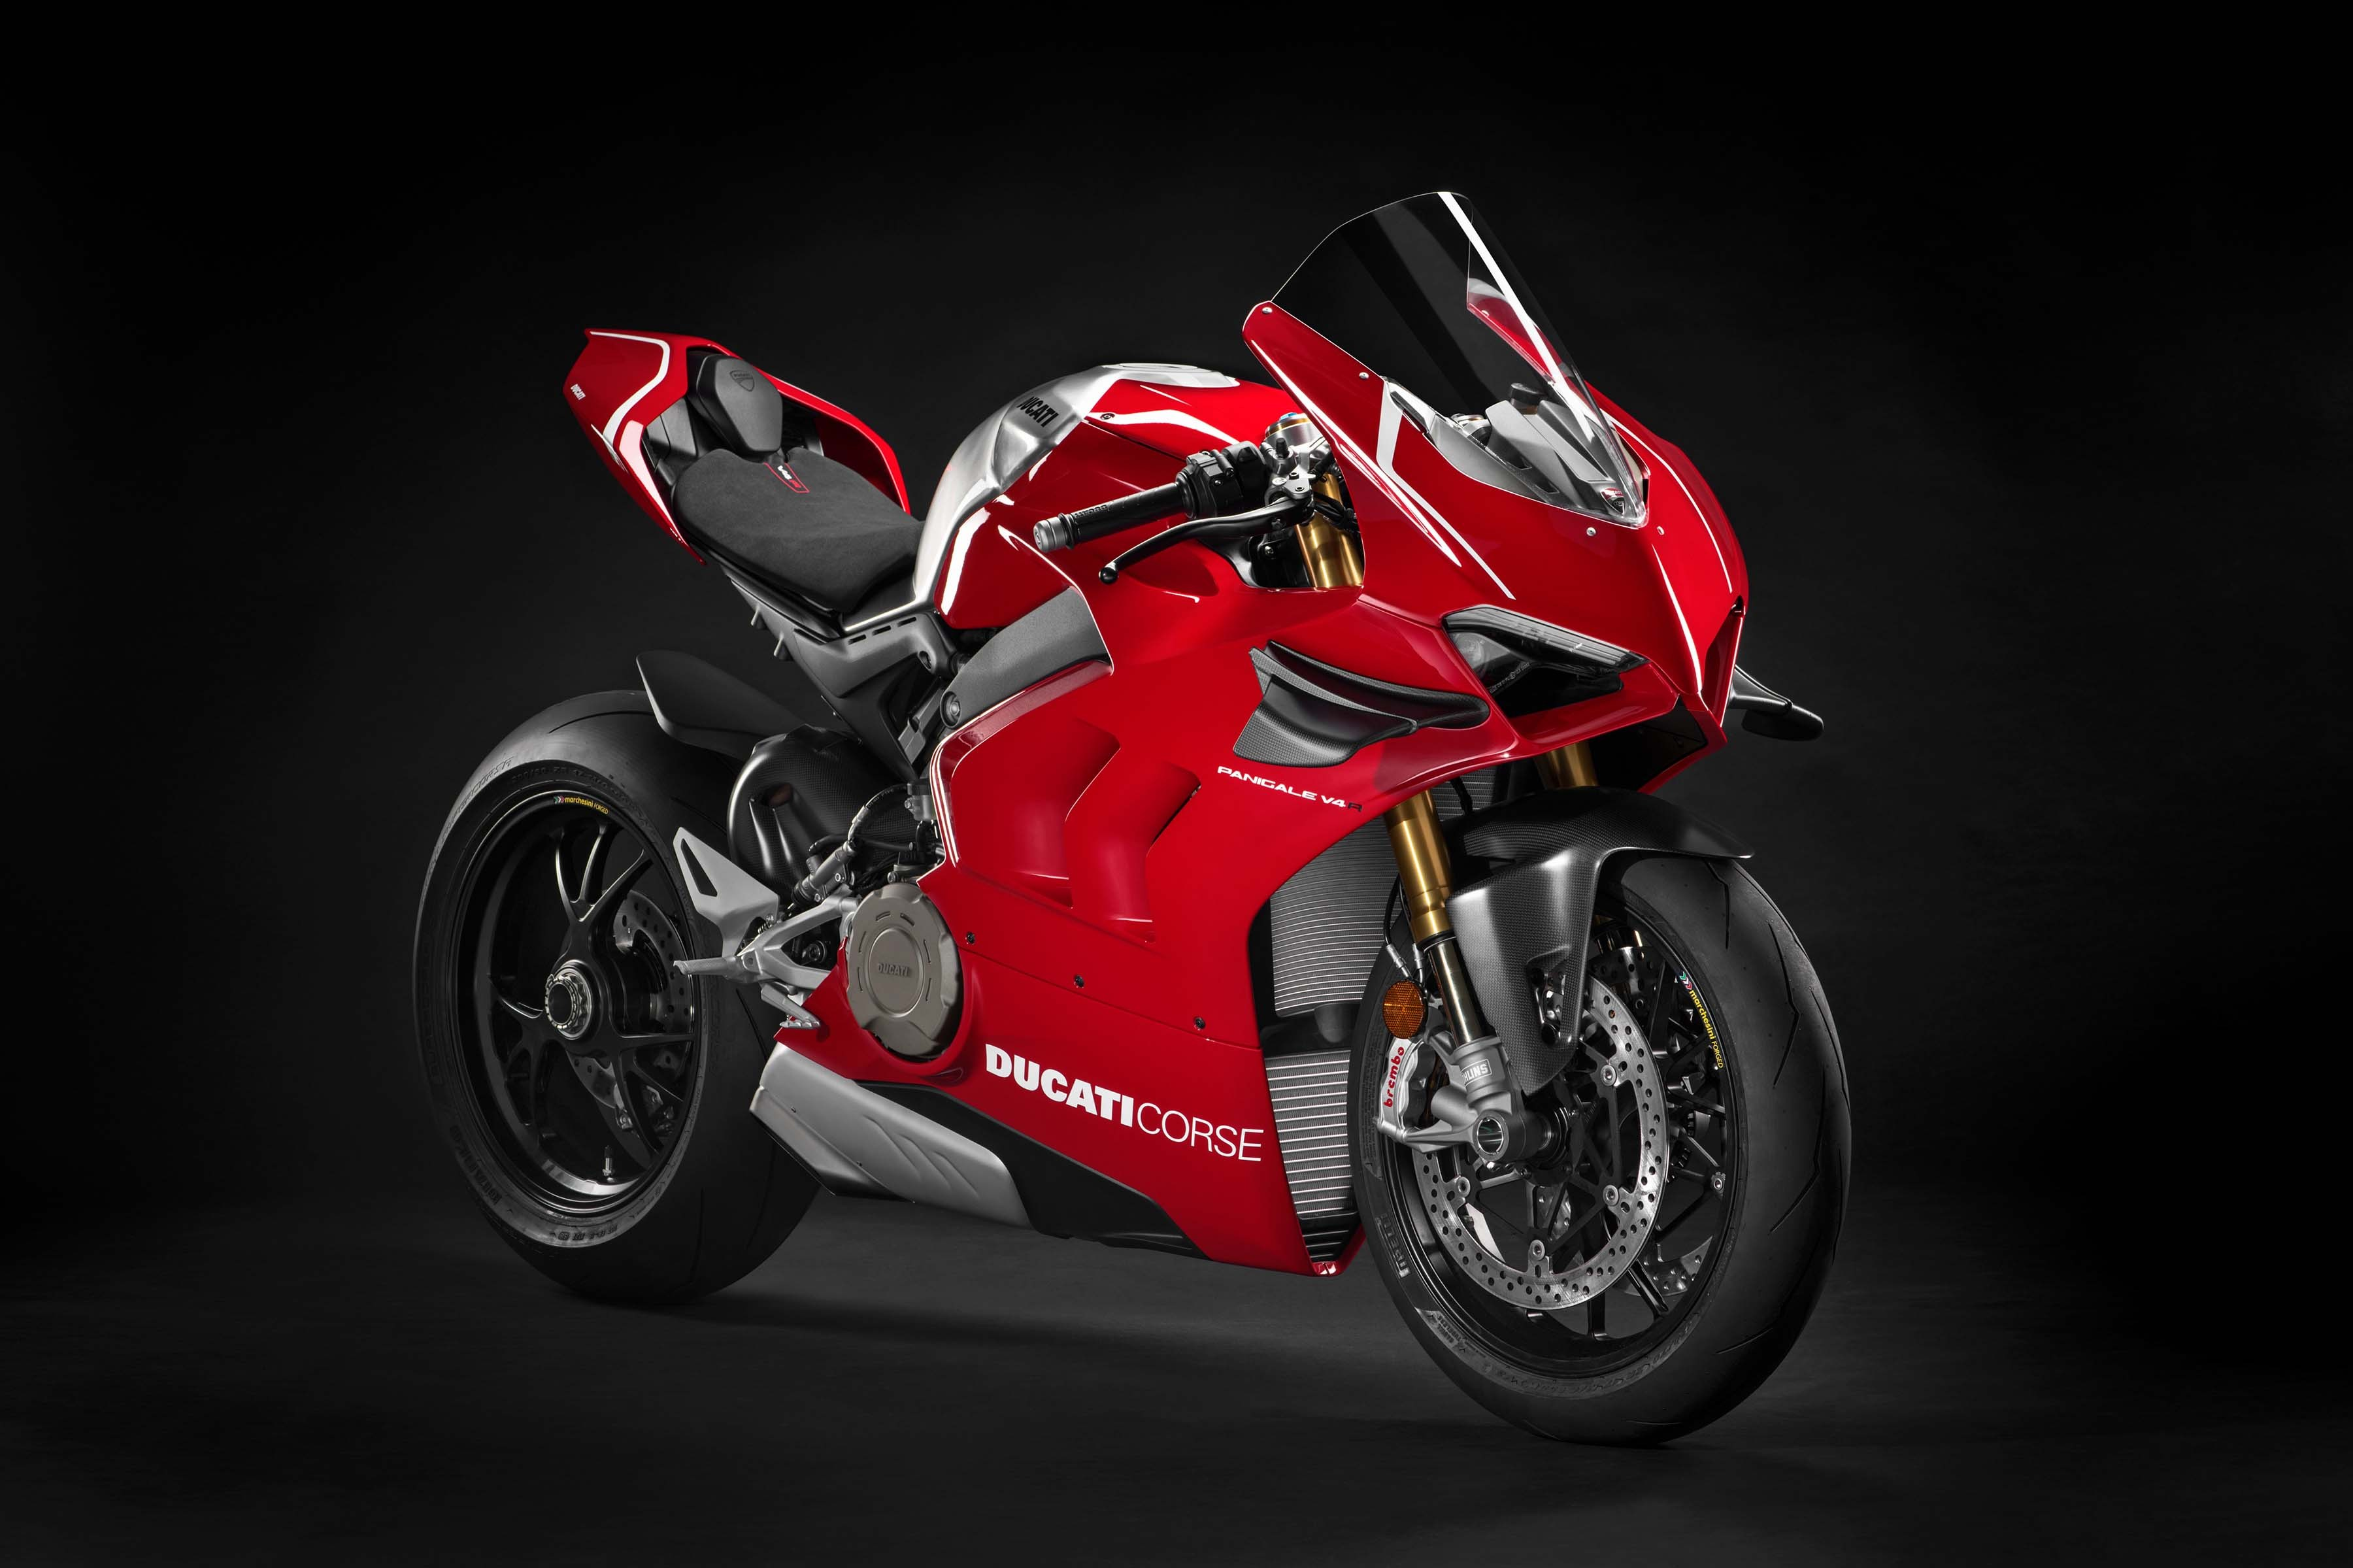 2019 ducati panigale v4 r debuts at world ducati premi re 2019 bikesrepublic. Black Bedroom Furniture Sets. Home Design Ideas